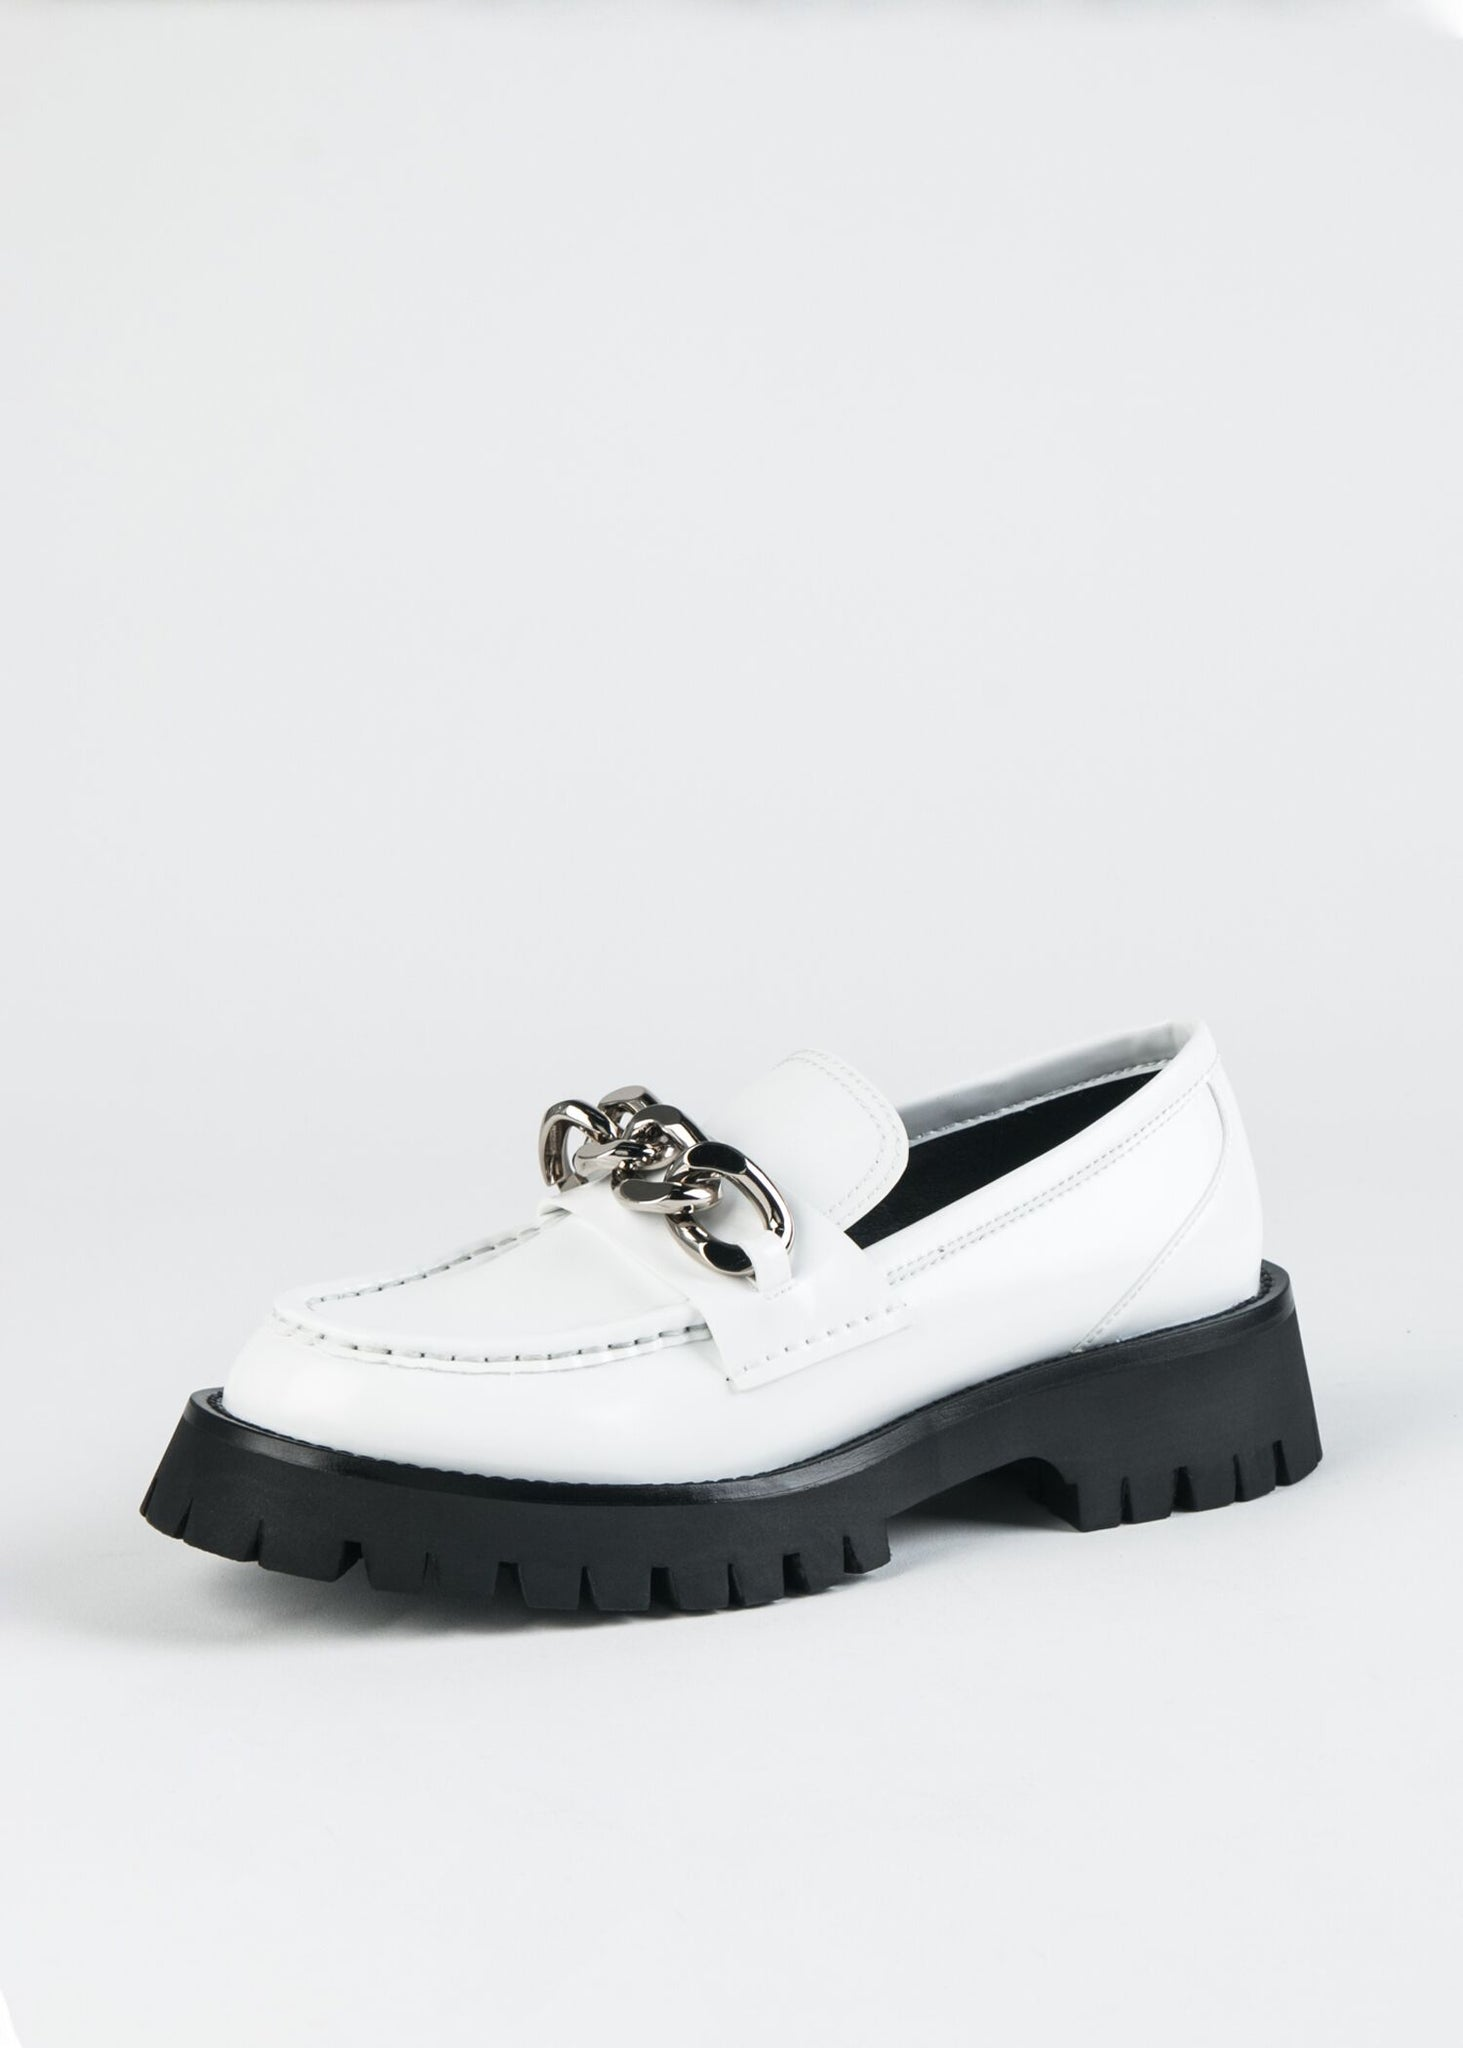 RECESS PLATFORM LUG SOLE LOAFER WITH DECORATIVE CHAIN